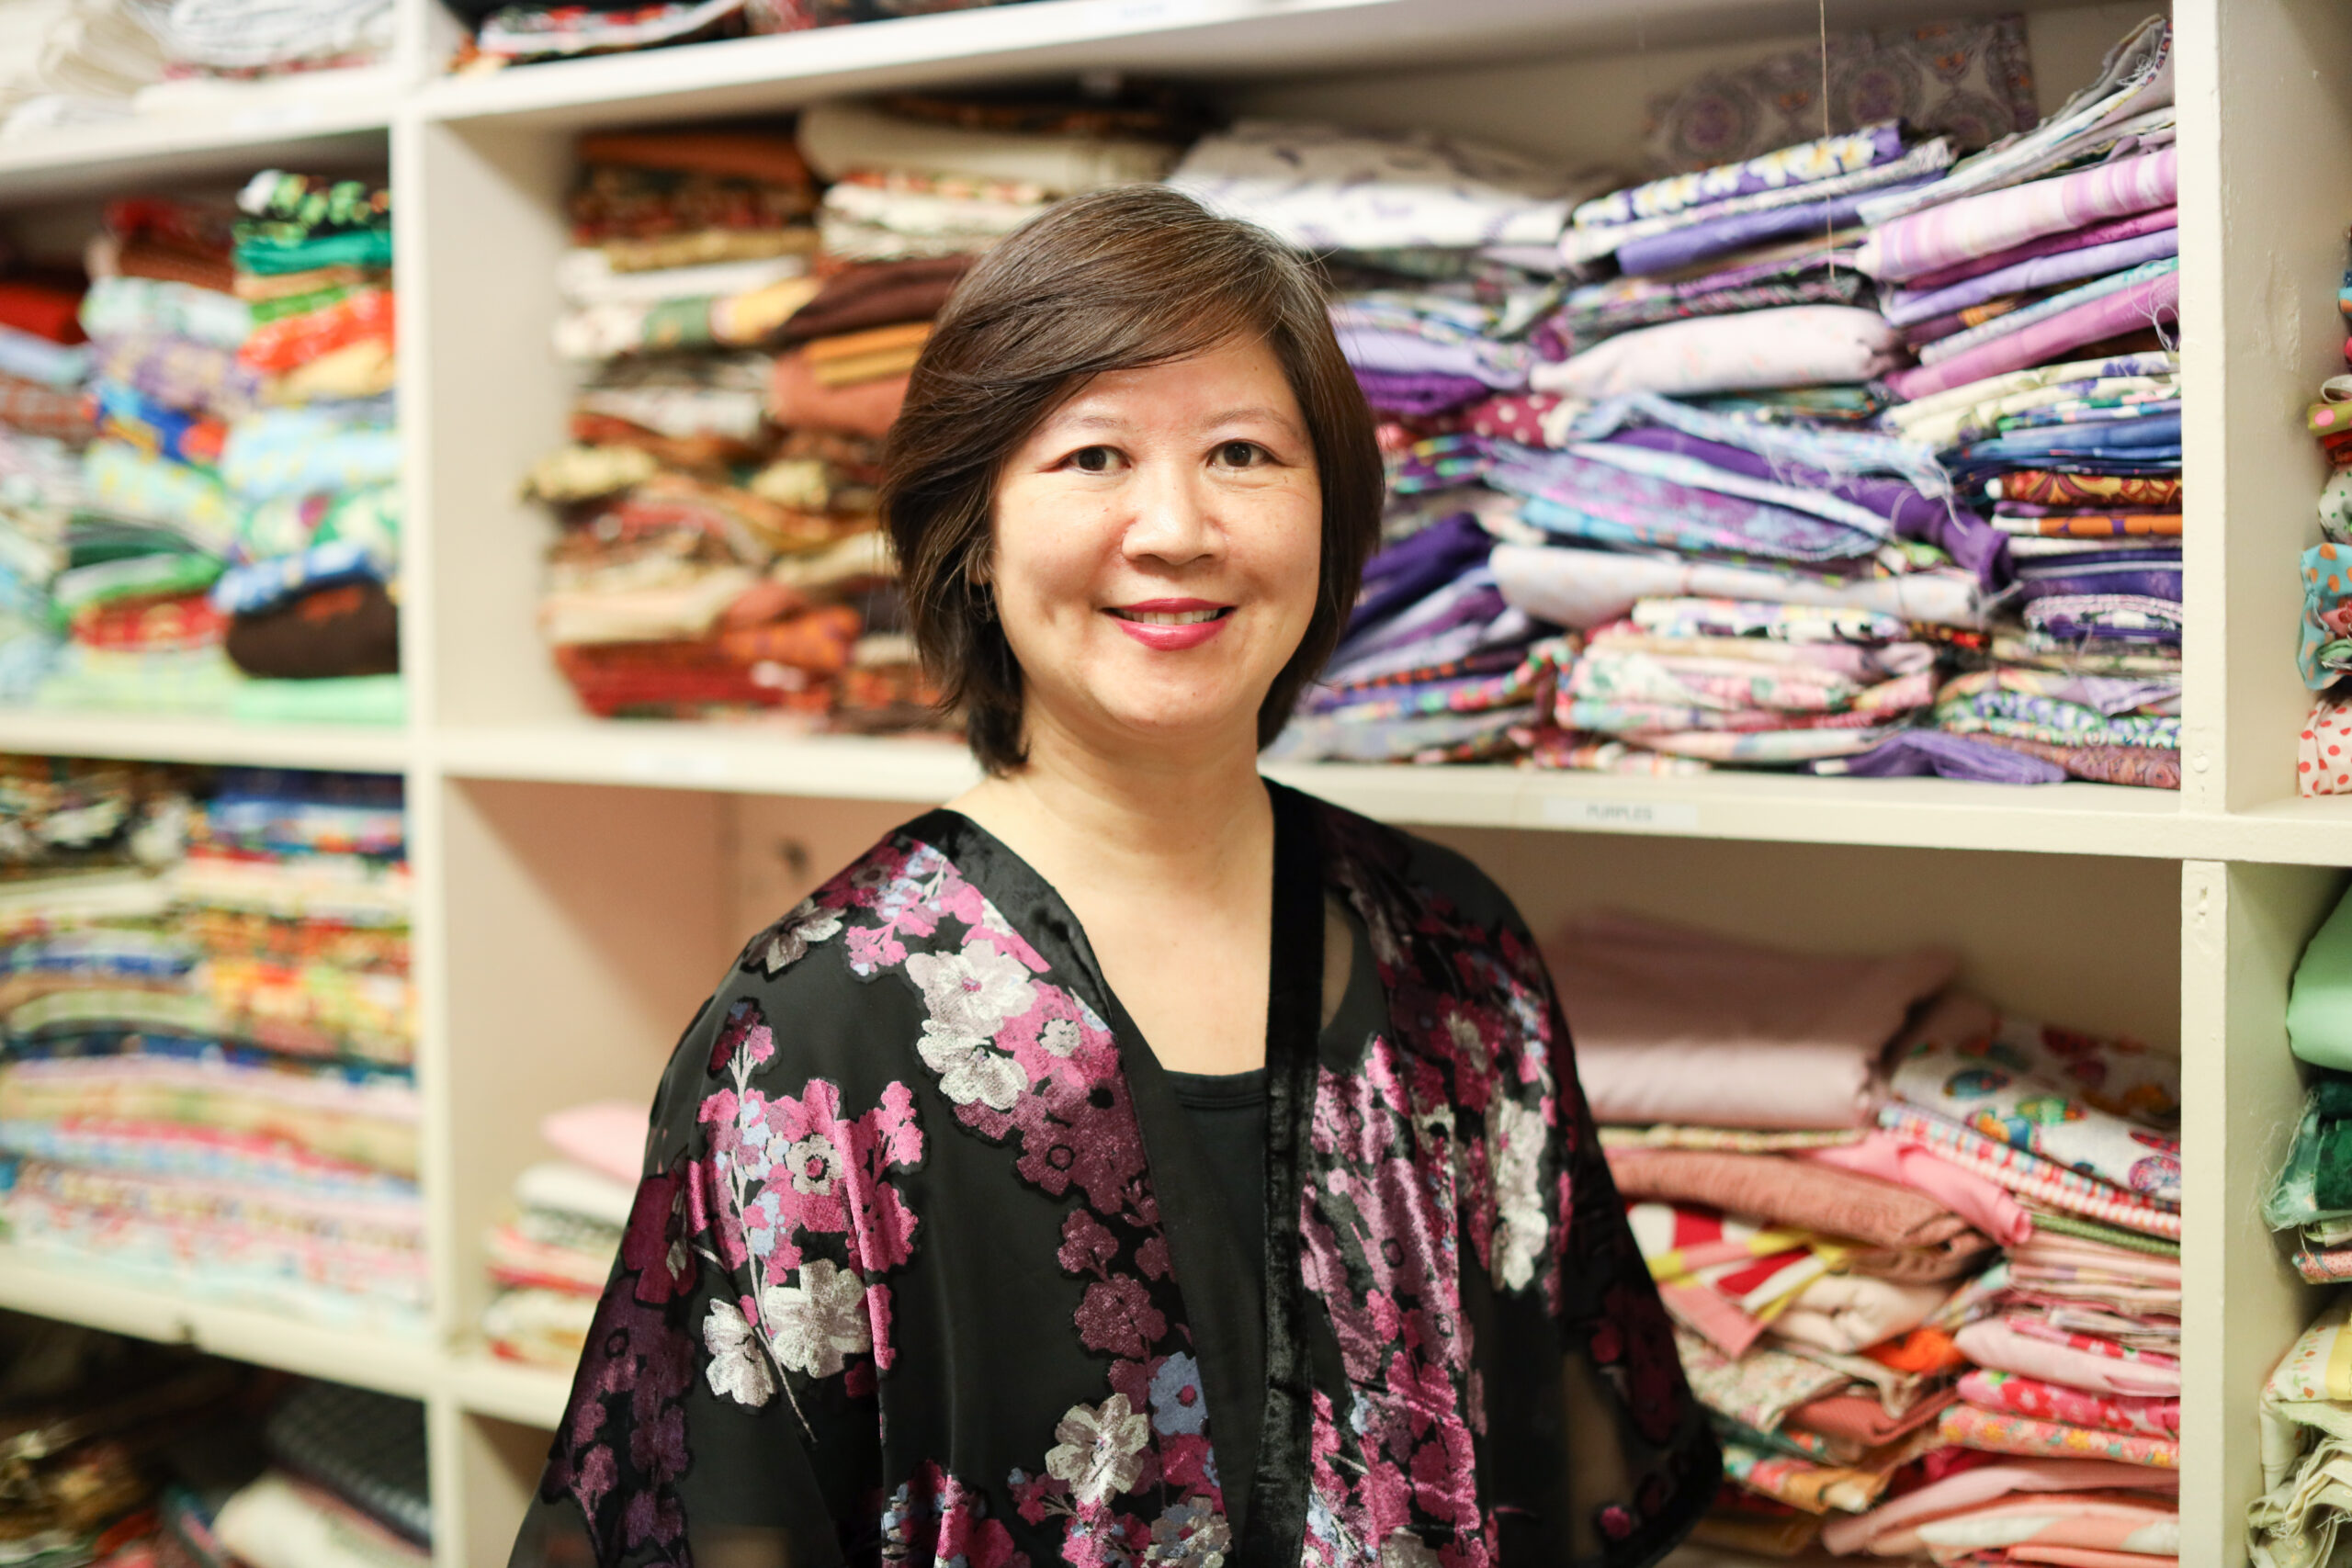 Ming-Ming wearing a black top with pink and white flowers standing in front of shelves of colored fabric.